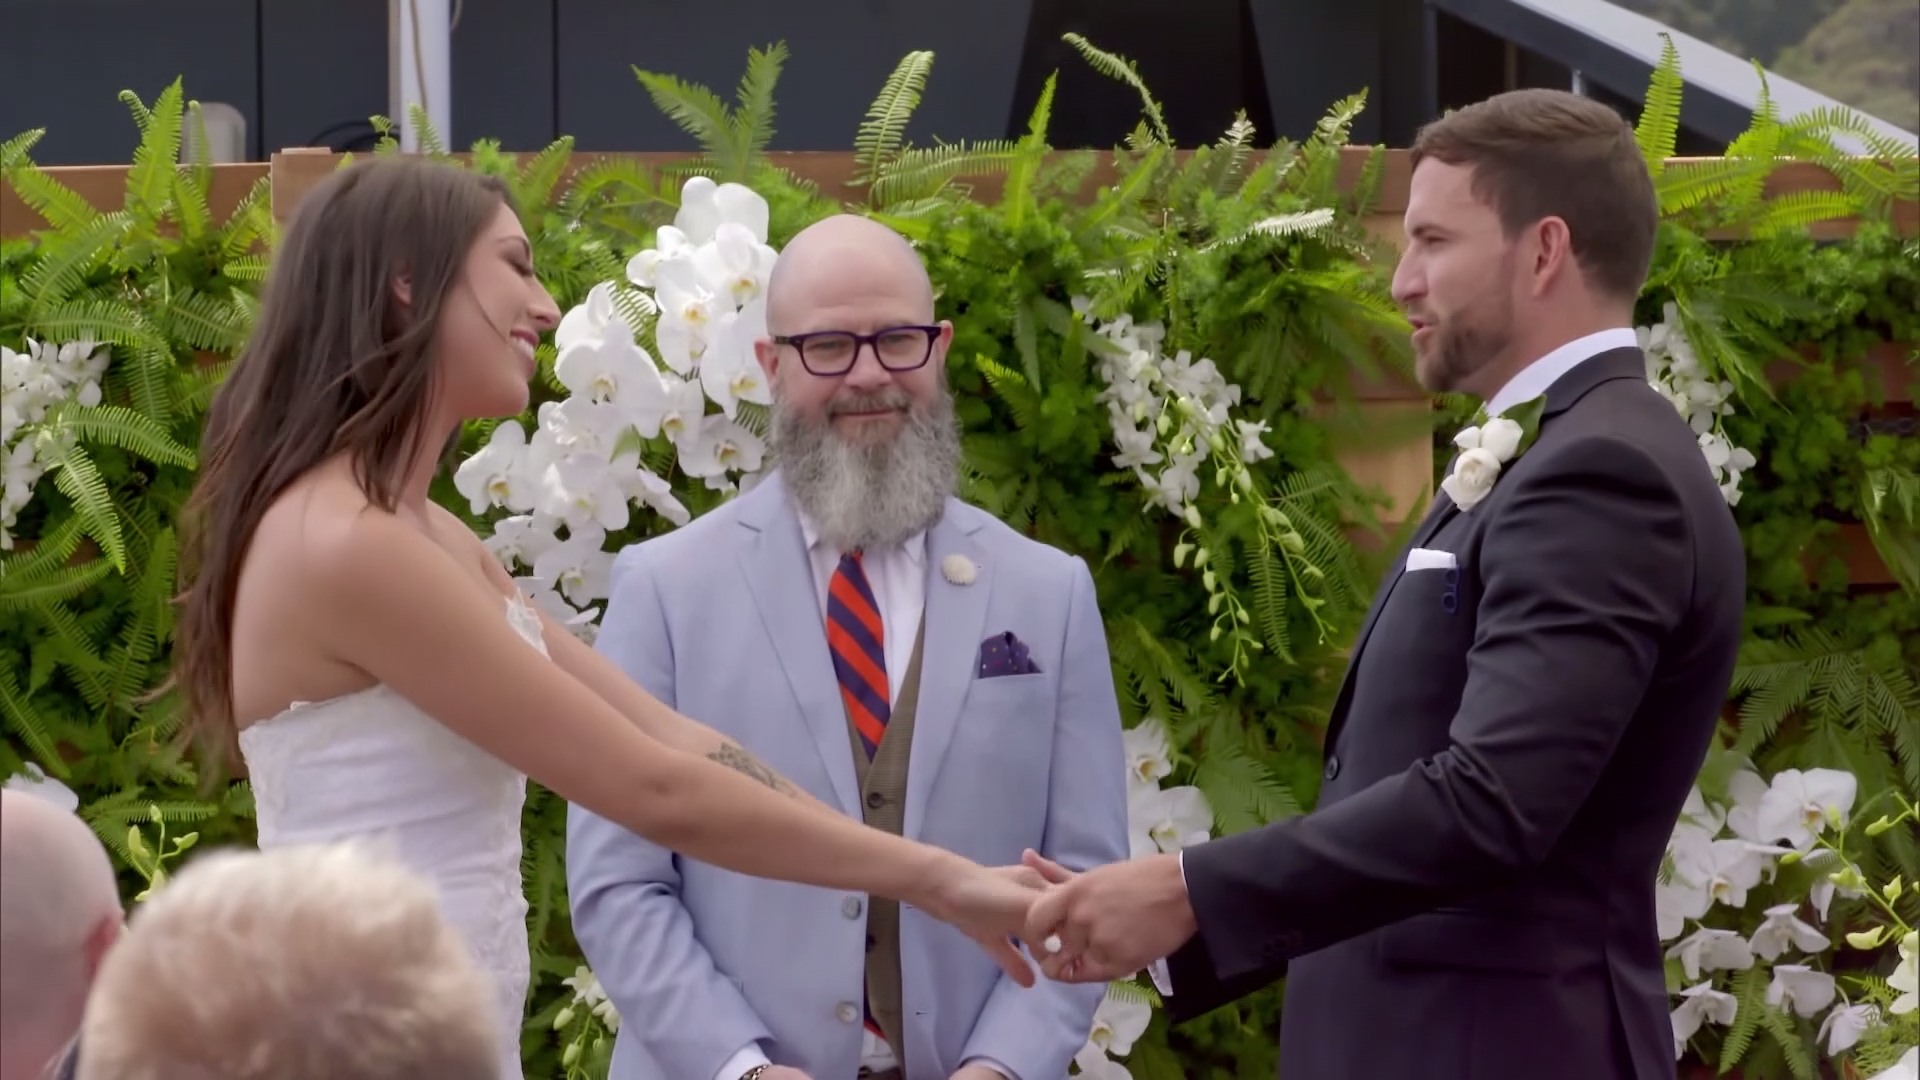 Tamara and Dan wed on a boat and instantly find each other attractive